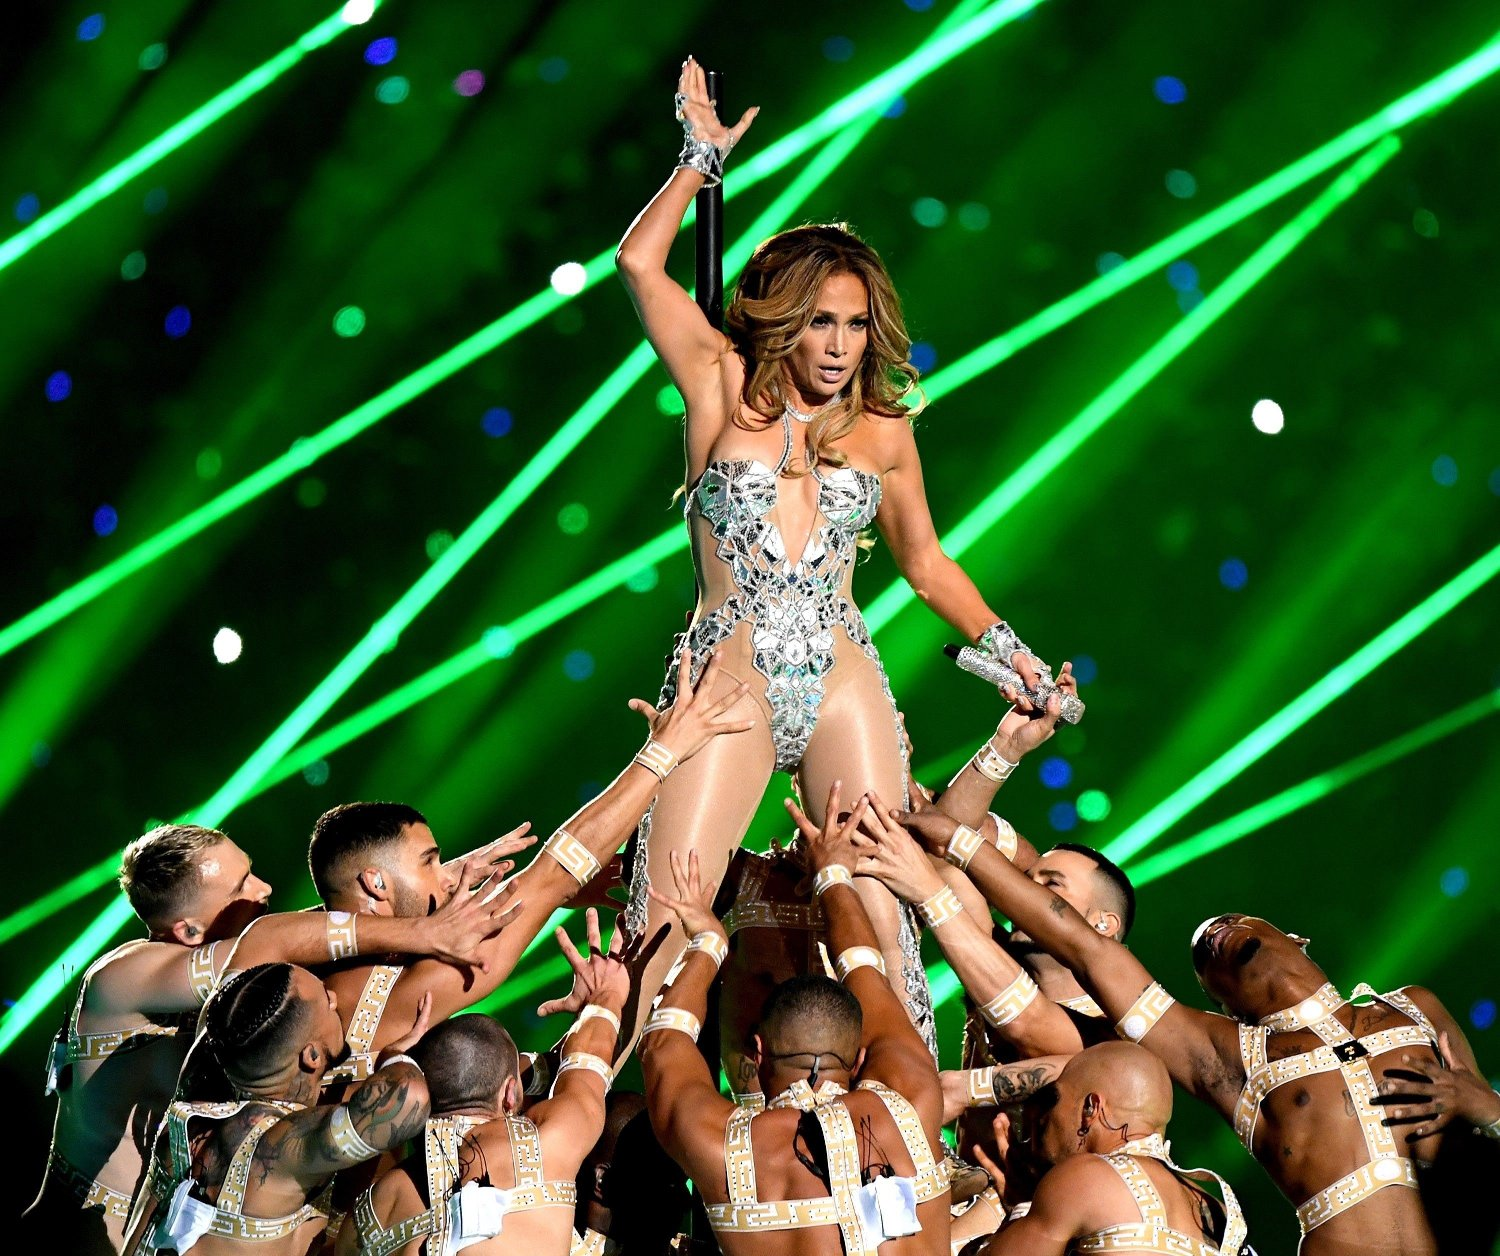 Pepsi Super Bowl LIV Halftime Show MIAMI, FLORIDA - FEBRUARY 02: Jennifer Lopez performs onstage during the Pepsi Super Bowl LIV Halftime Show at Hard Rock Stadium on February 02, 2020 in Miami, Florida. Kevin Winter/Getty Images/AFP == FOR NEWSPAPERS, INTERNET, TELCOS & TELEVISION USE ONLY ==